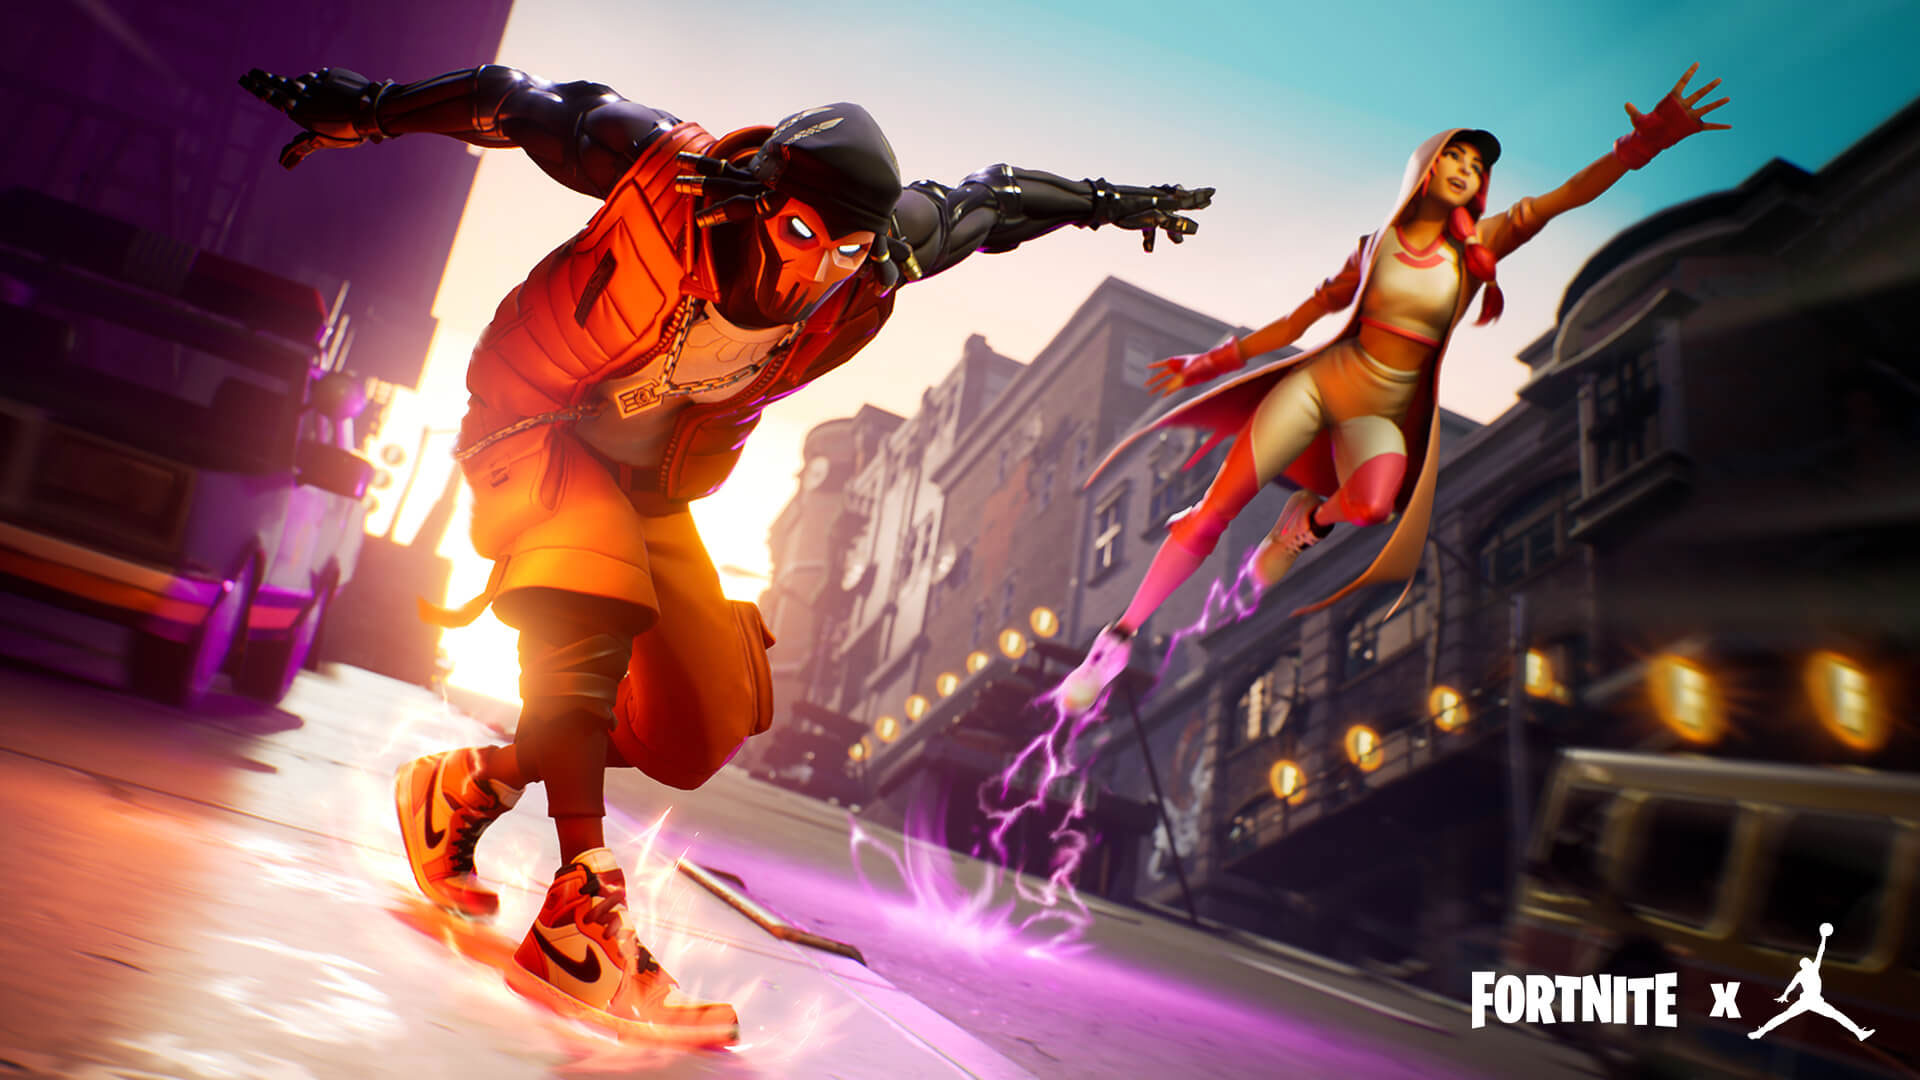 download Fortnite Clutch Skin Outfit PNGs Images Pro Game 1920x1080